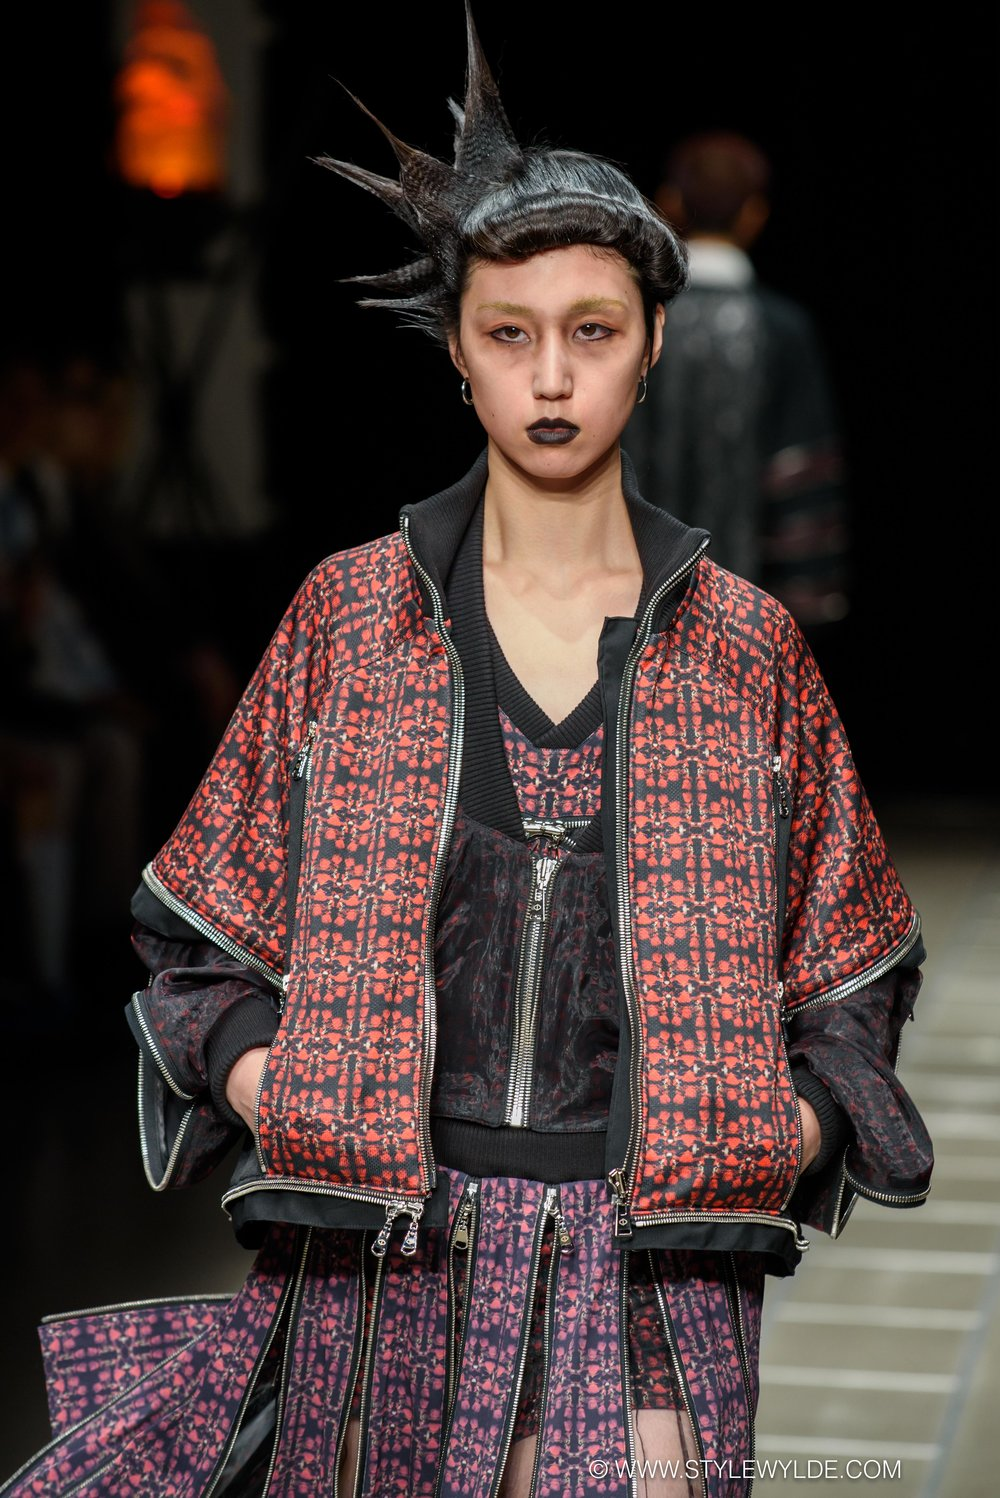 stylewylde_acuod_by_chanu_SS18_runway-25.jpg